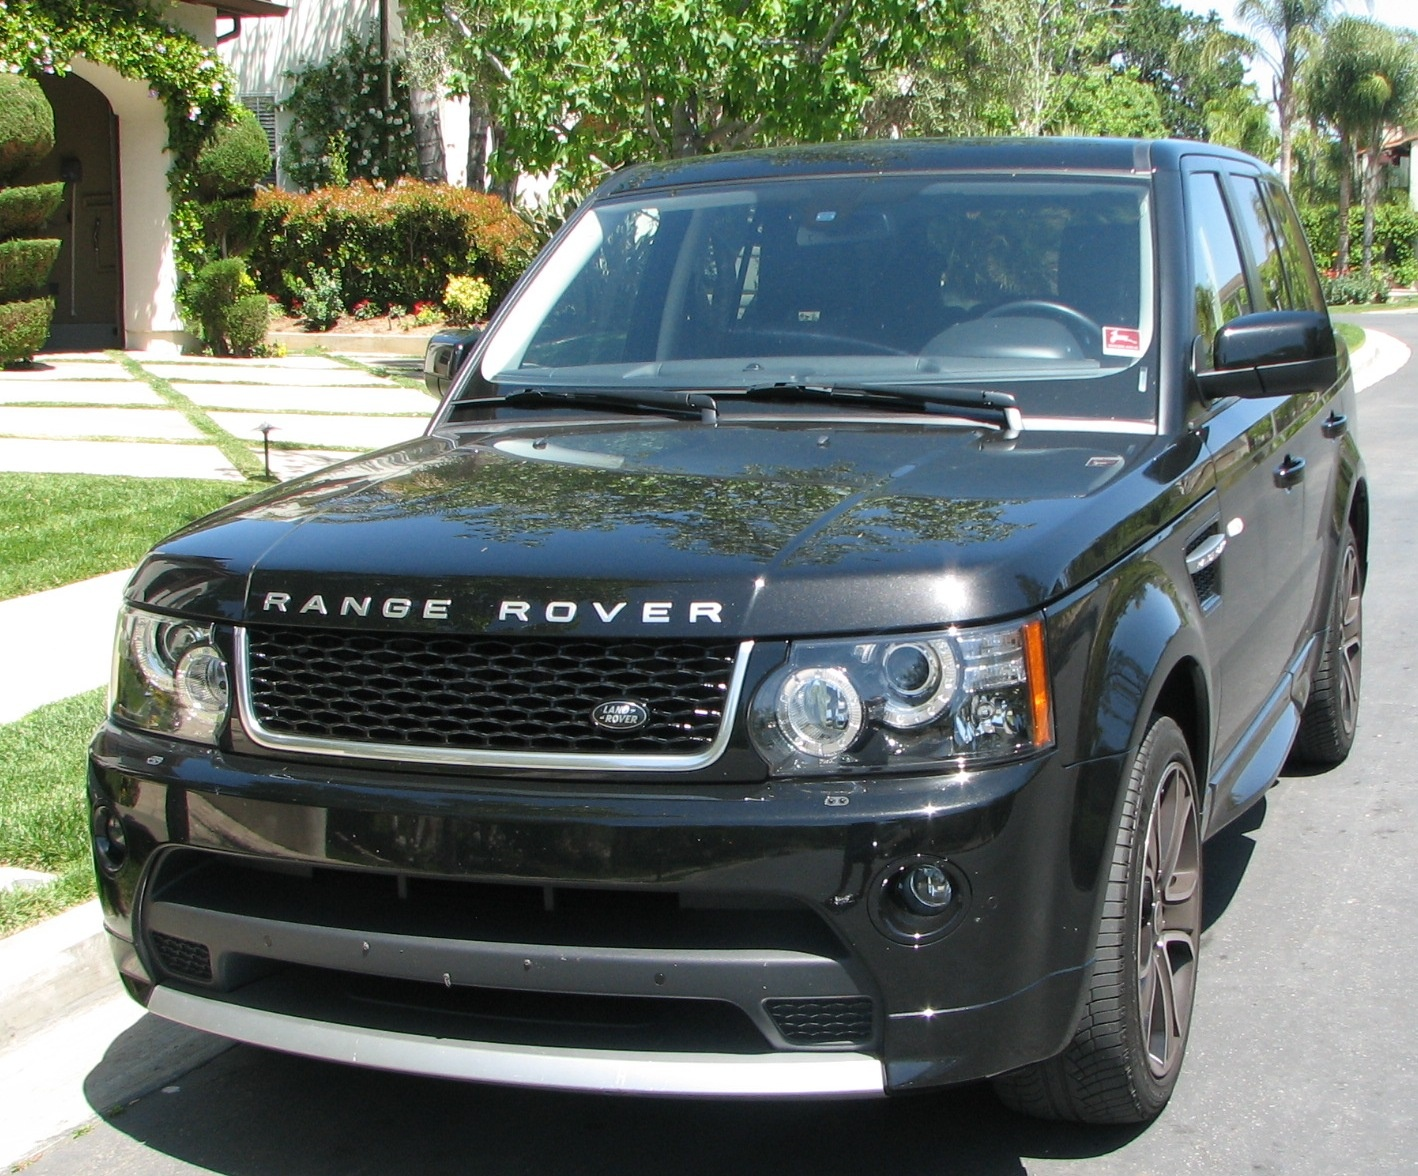 2013 land rover range rover sport pictures cargurus. Black Bedroom Furniture Sets. Home Design Ideas